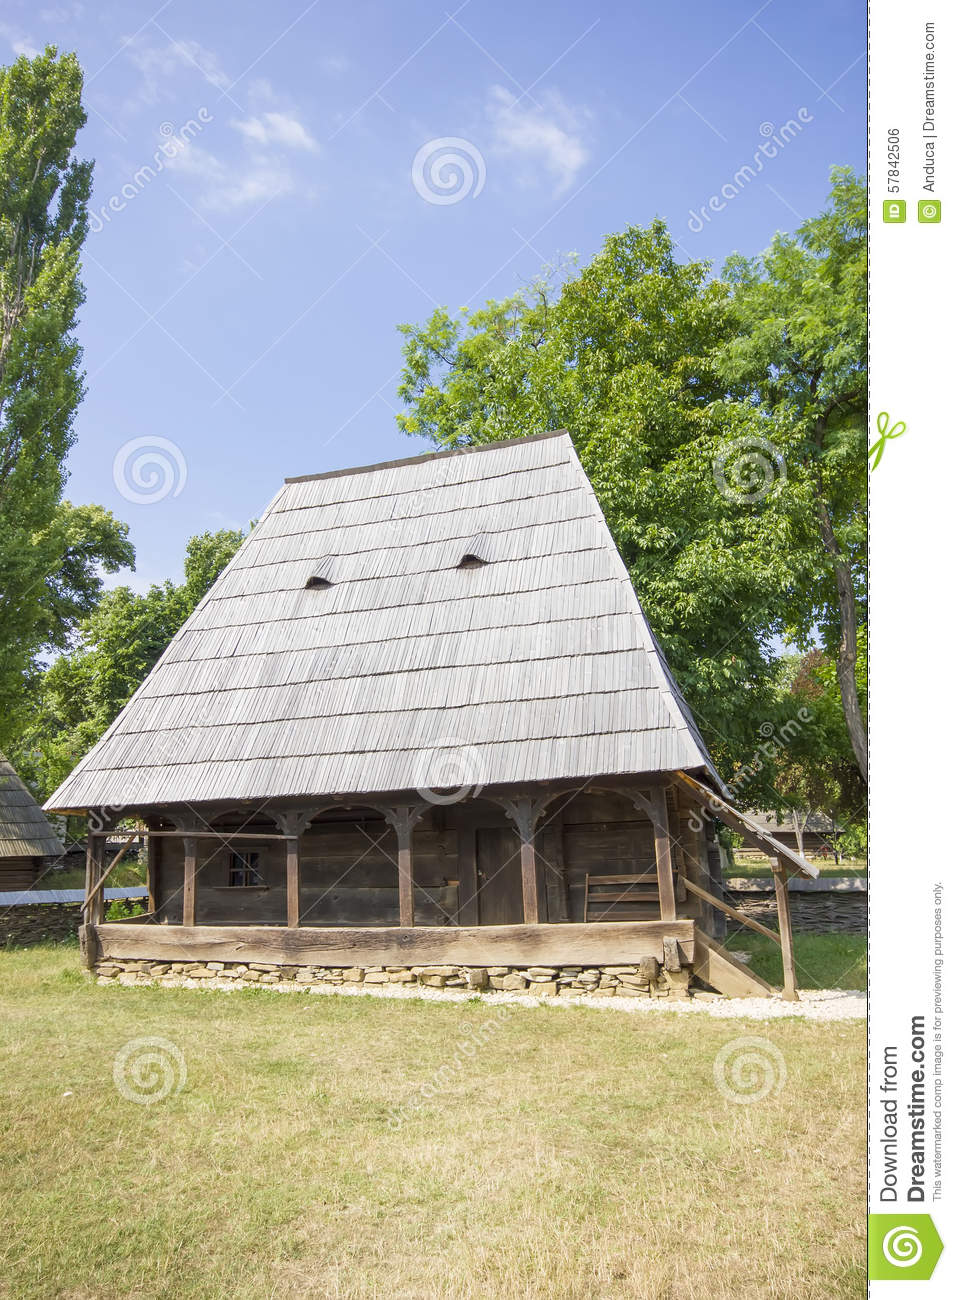 Wooden Traditional Romanian House Stock Photo Image